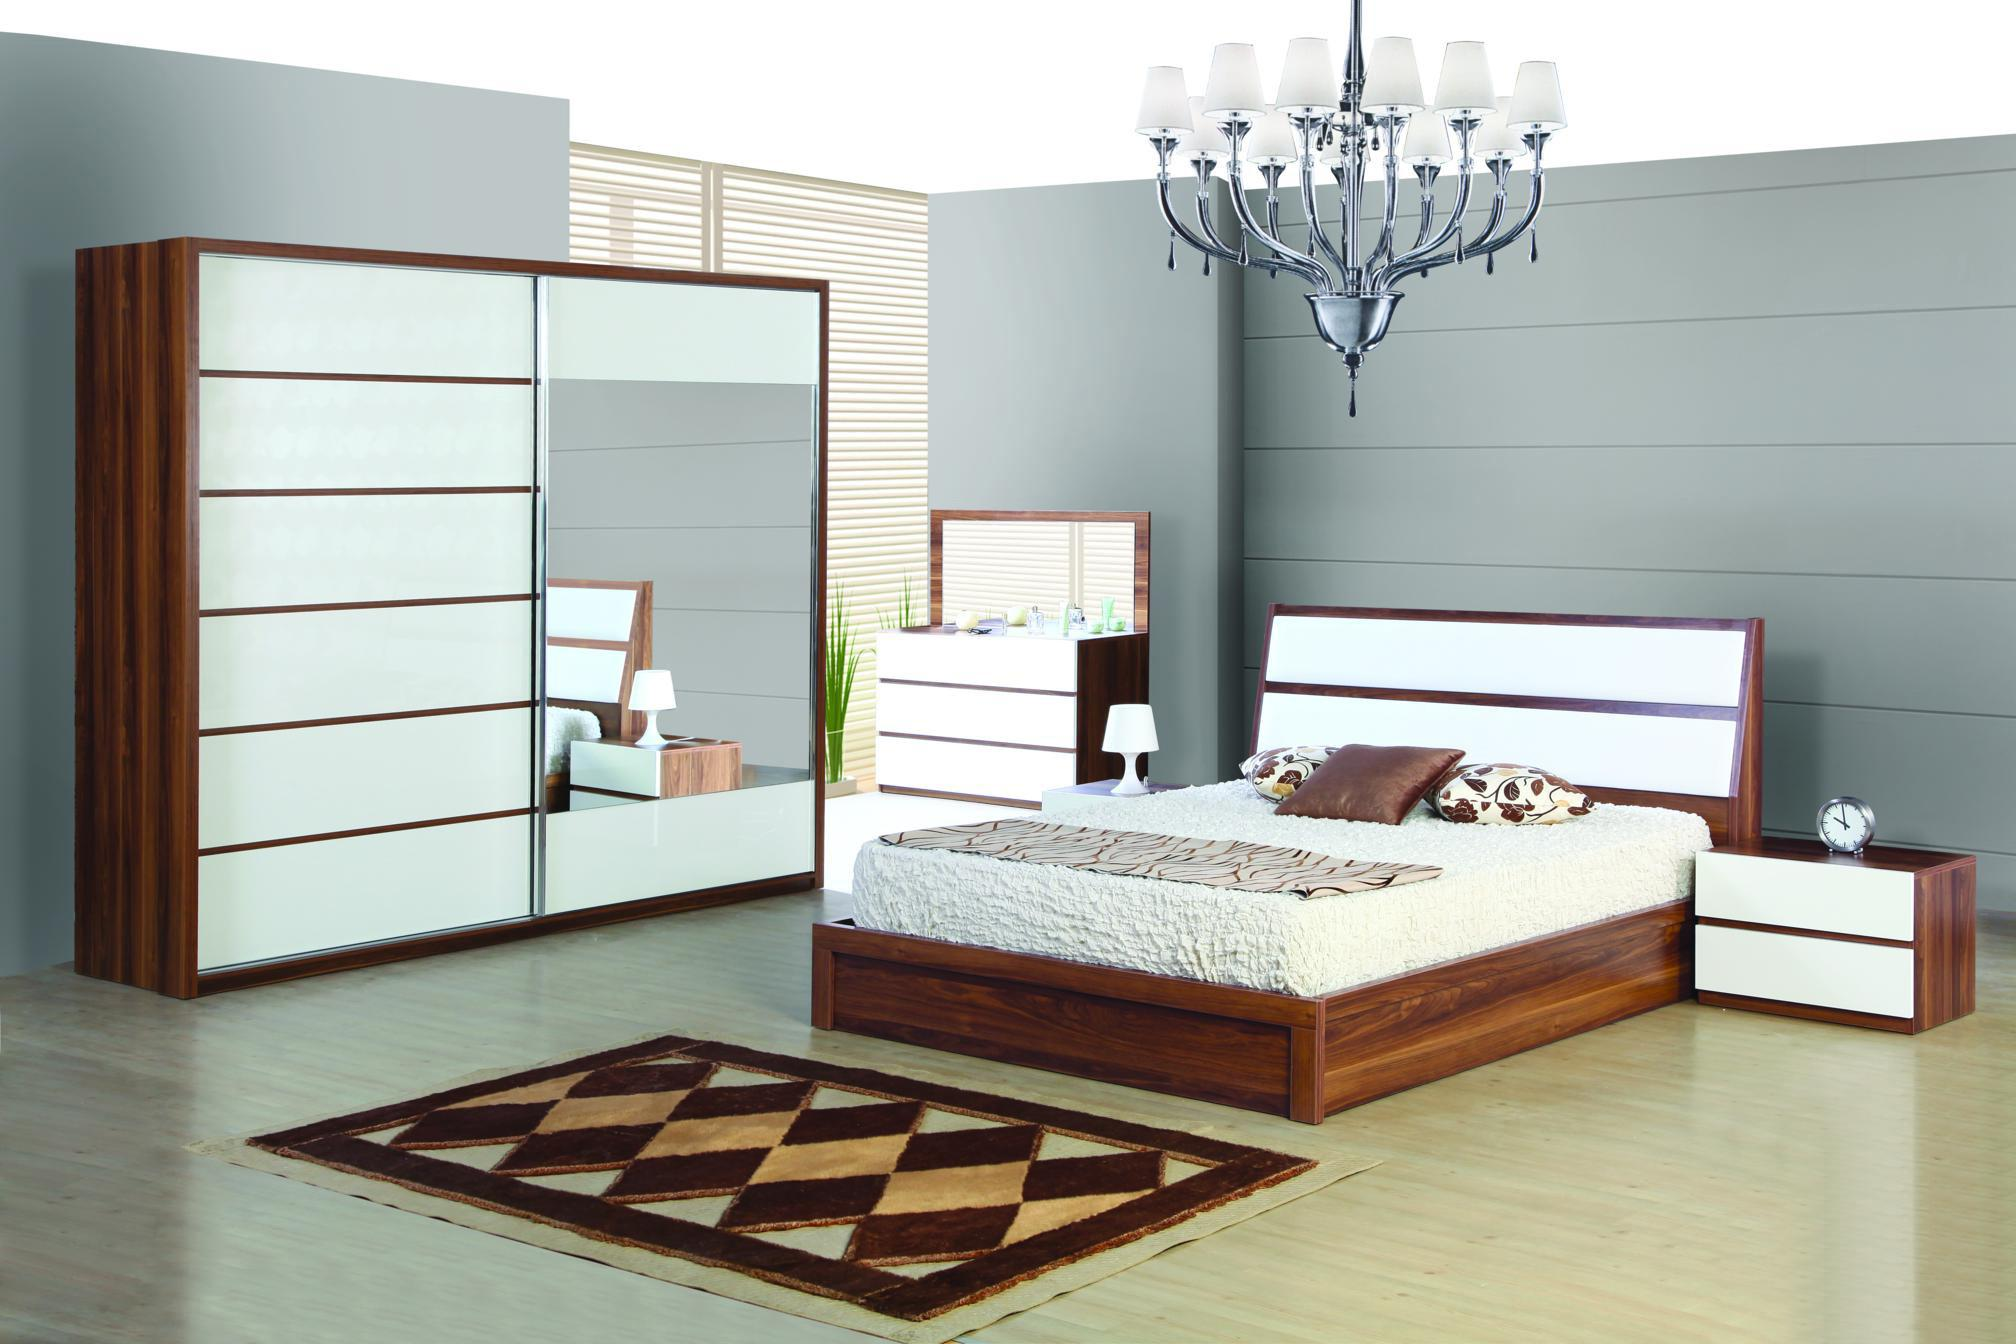 Bedroom King Headboards Any Materials